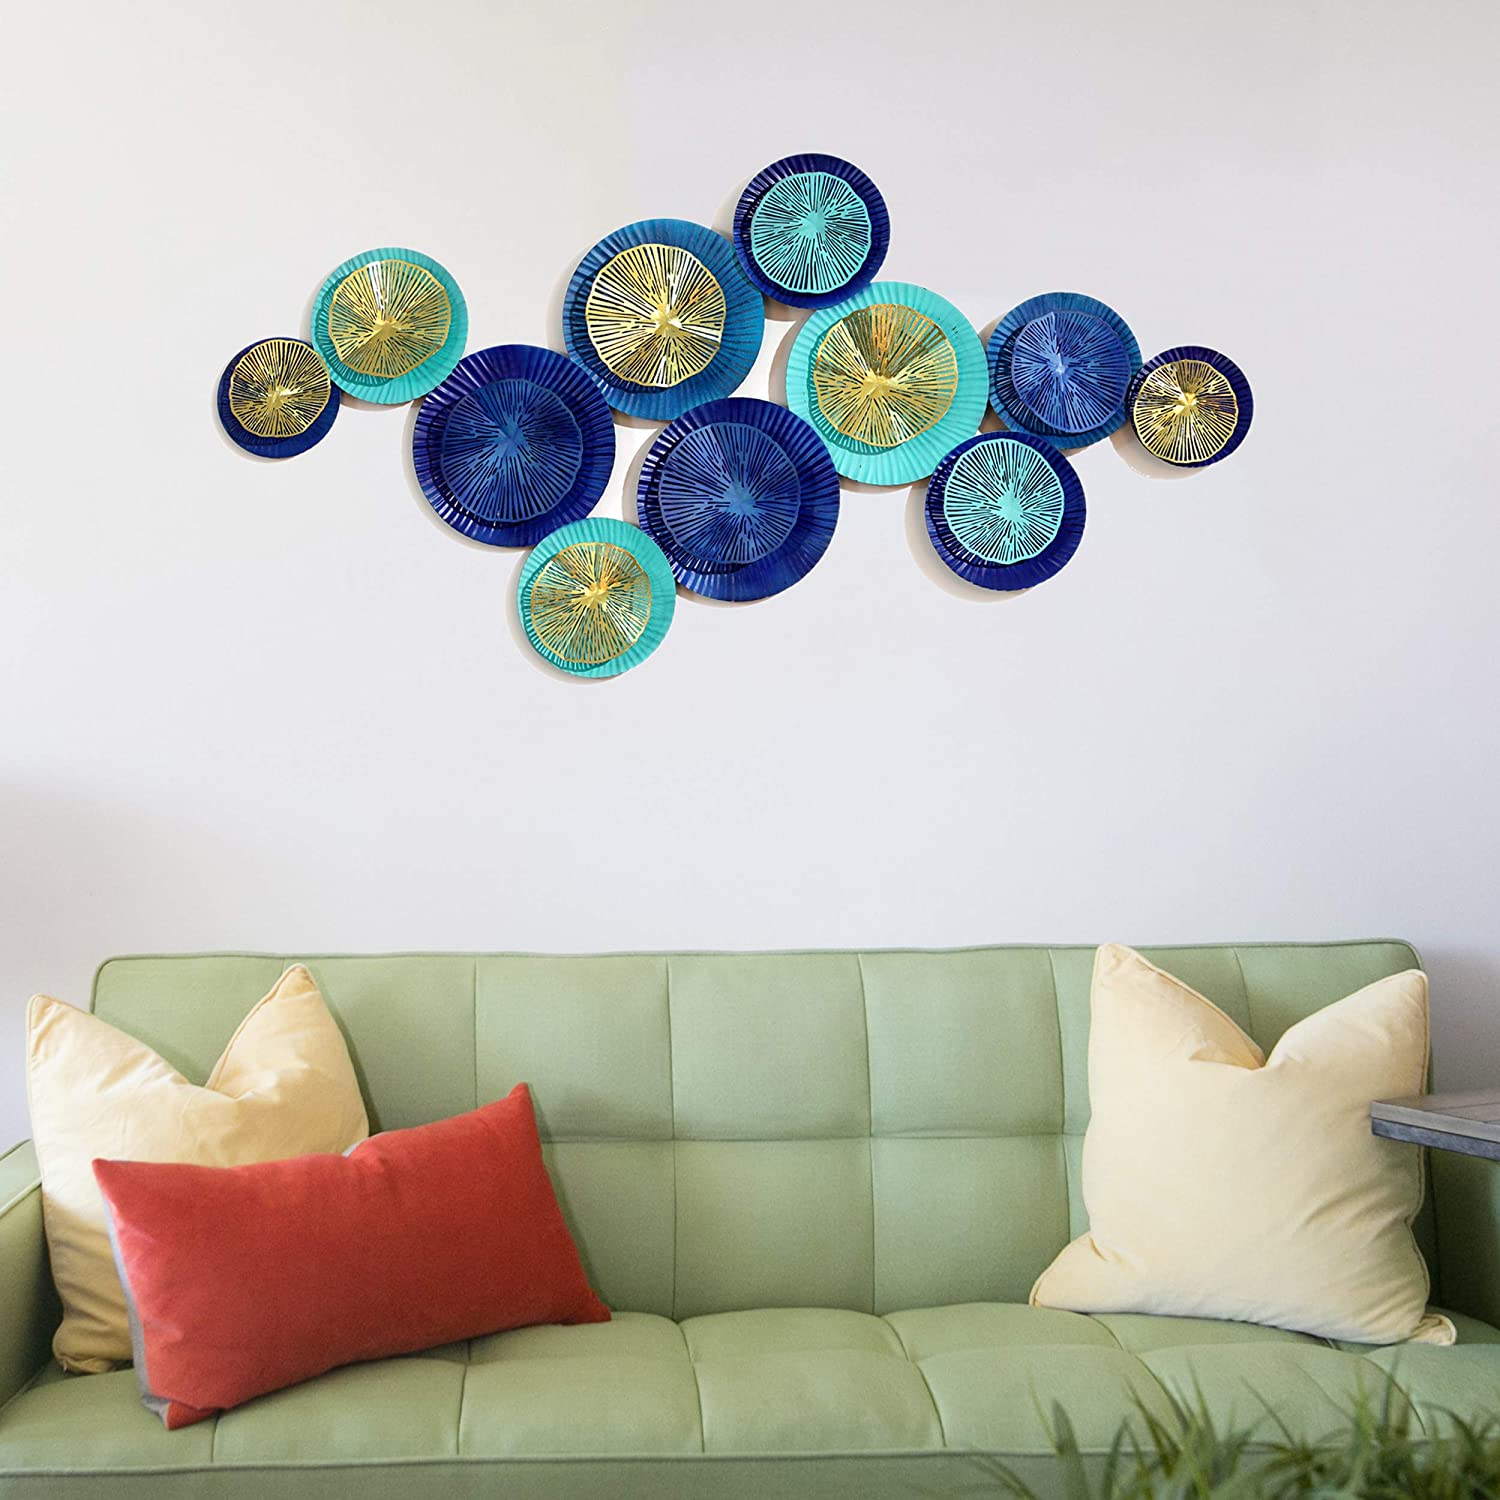 Decorlives Handmade 2021 spring and summer new Collection Columbus Mall Decorative Metal W Hanging Circle